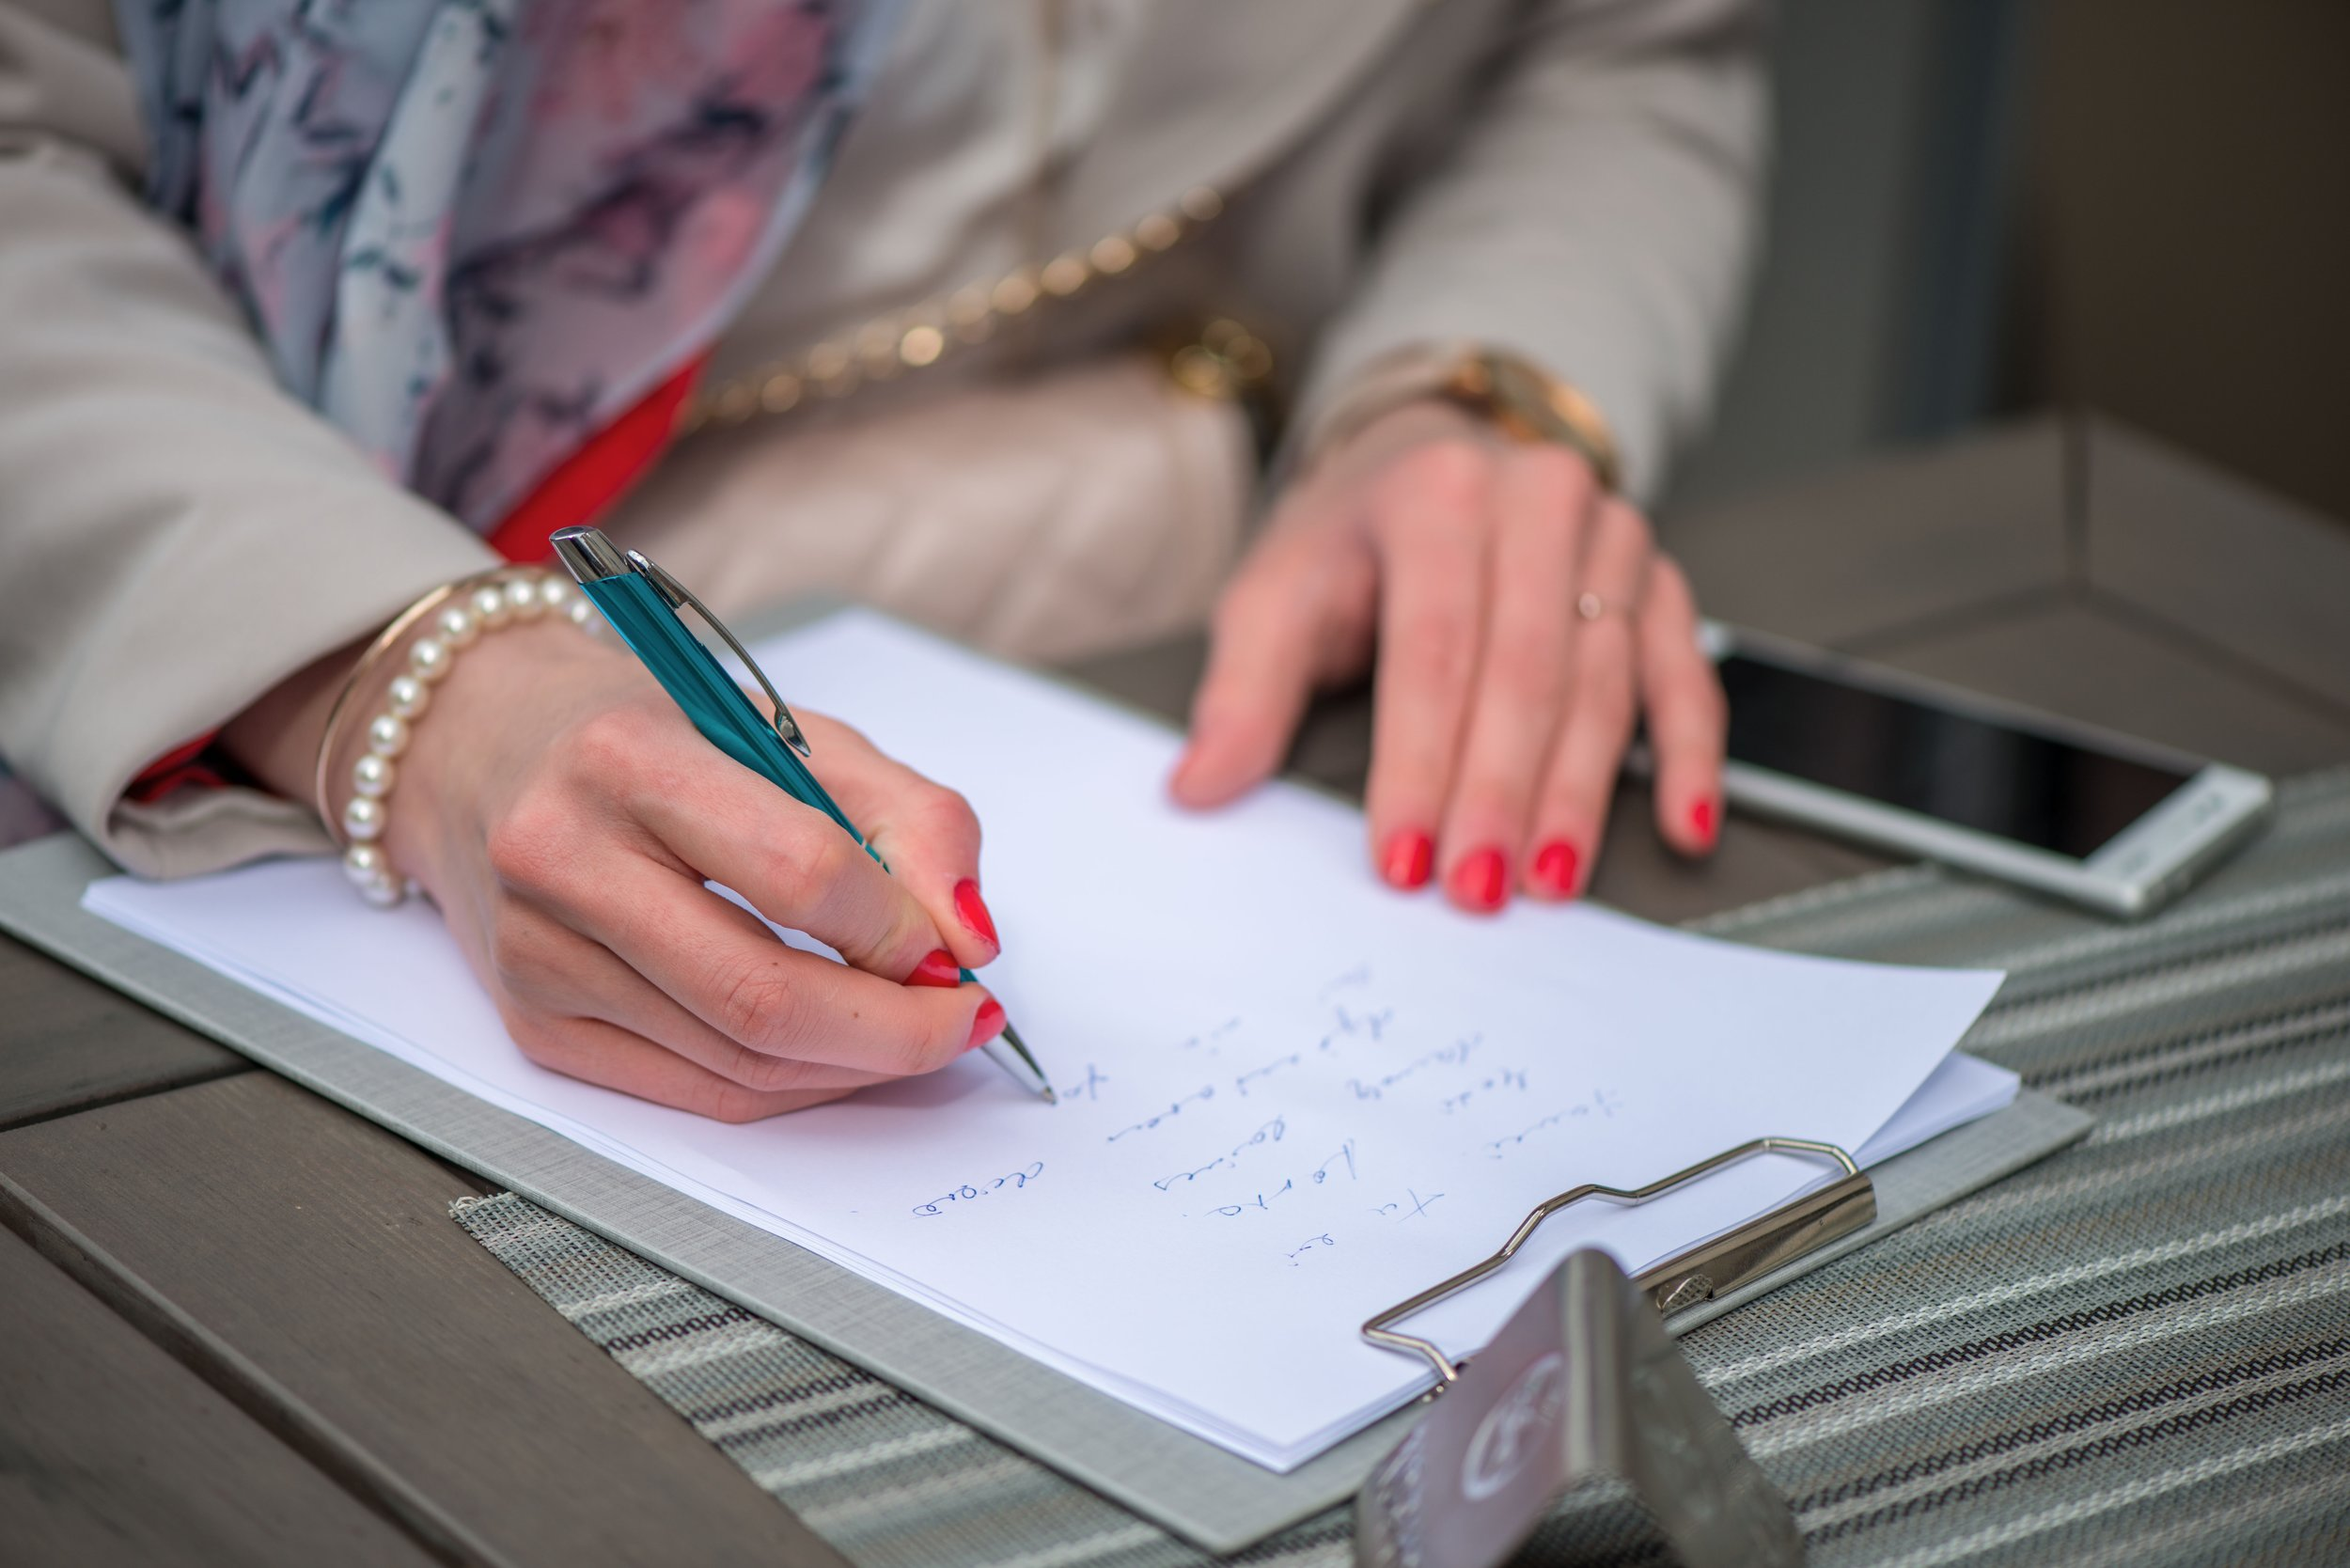 close-up-of-female-hands-woman-writing-something-sitting-at-cafe-signing-documents-woman-paperwork_t20_W7bm9m.jpg